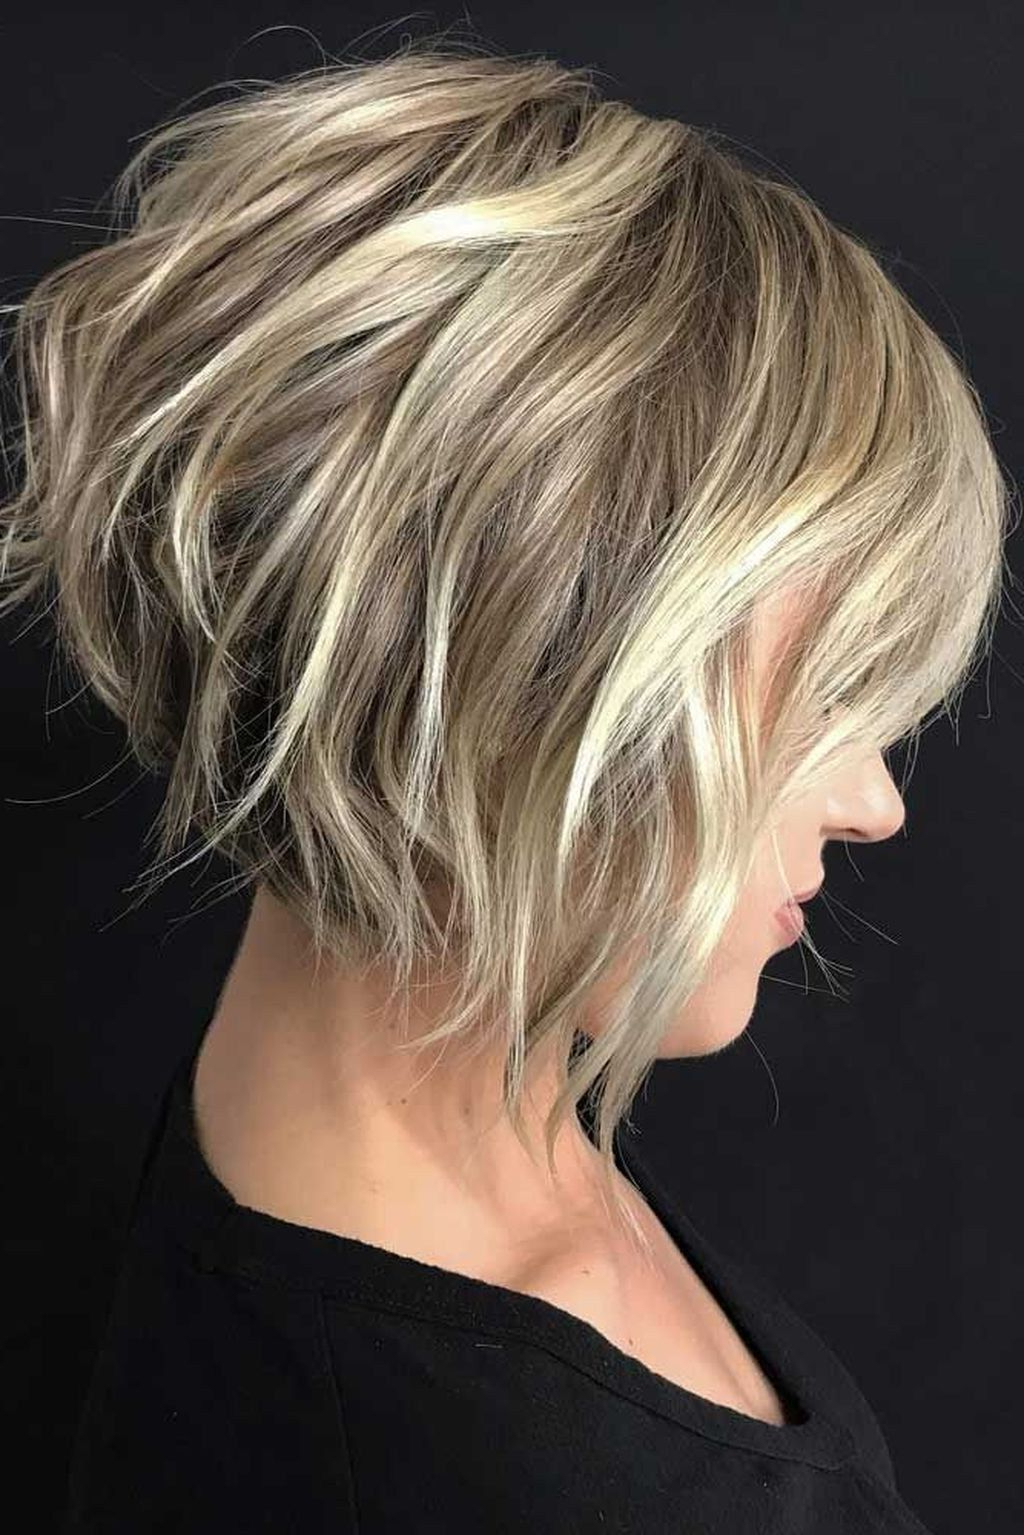 Fabulous Short Shag Haircuts Ideas27 | Inverted Bob Haircuts Throughout Very Short Shaggy Bob Hairstyles (View 11 of 20)